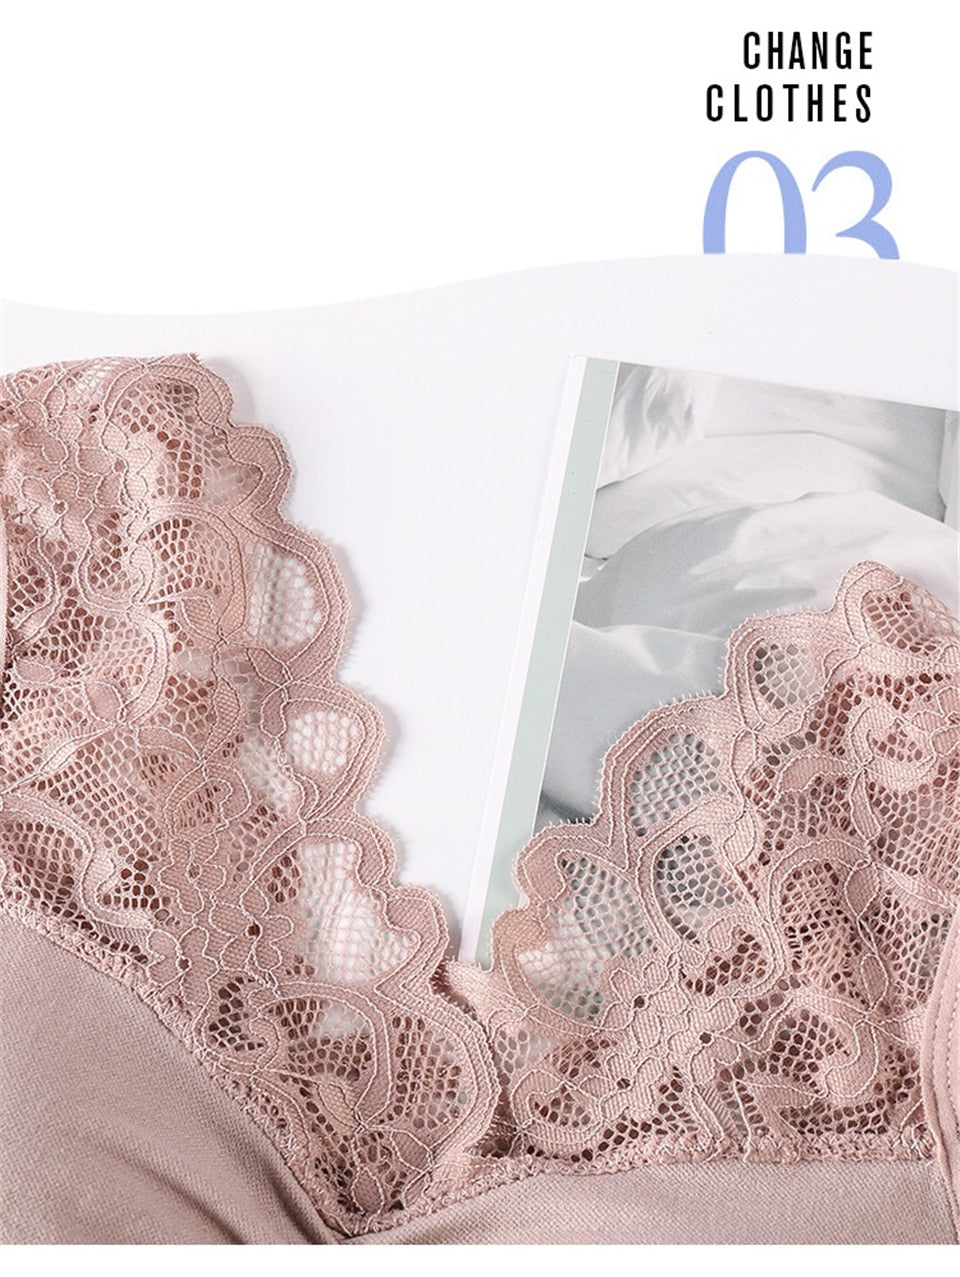 Push Up Comfort Super Elastic Breathable Lace Bra